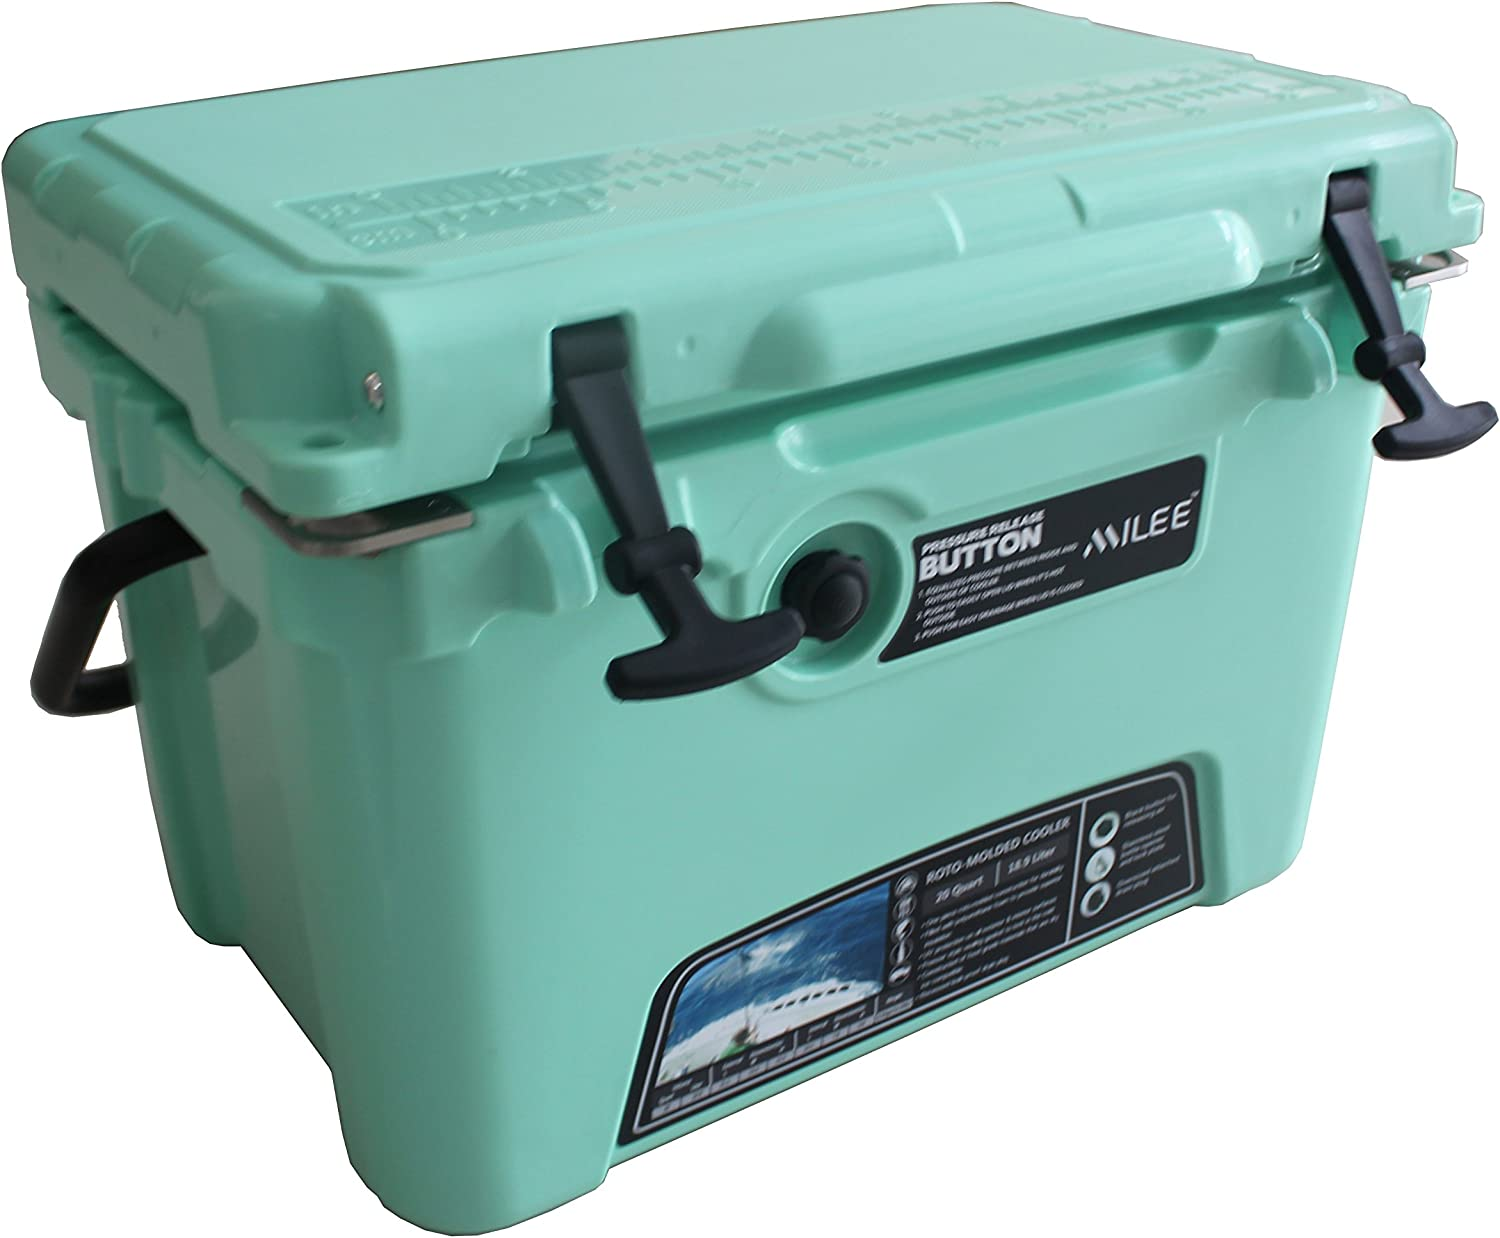 MILEE Heavy Duty Cooler Box-20QT 28 Accessories Included Basket and Cup Holder are Free